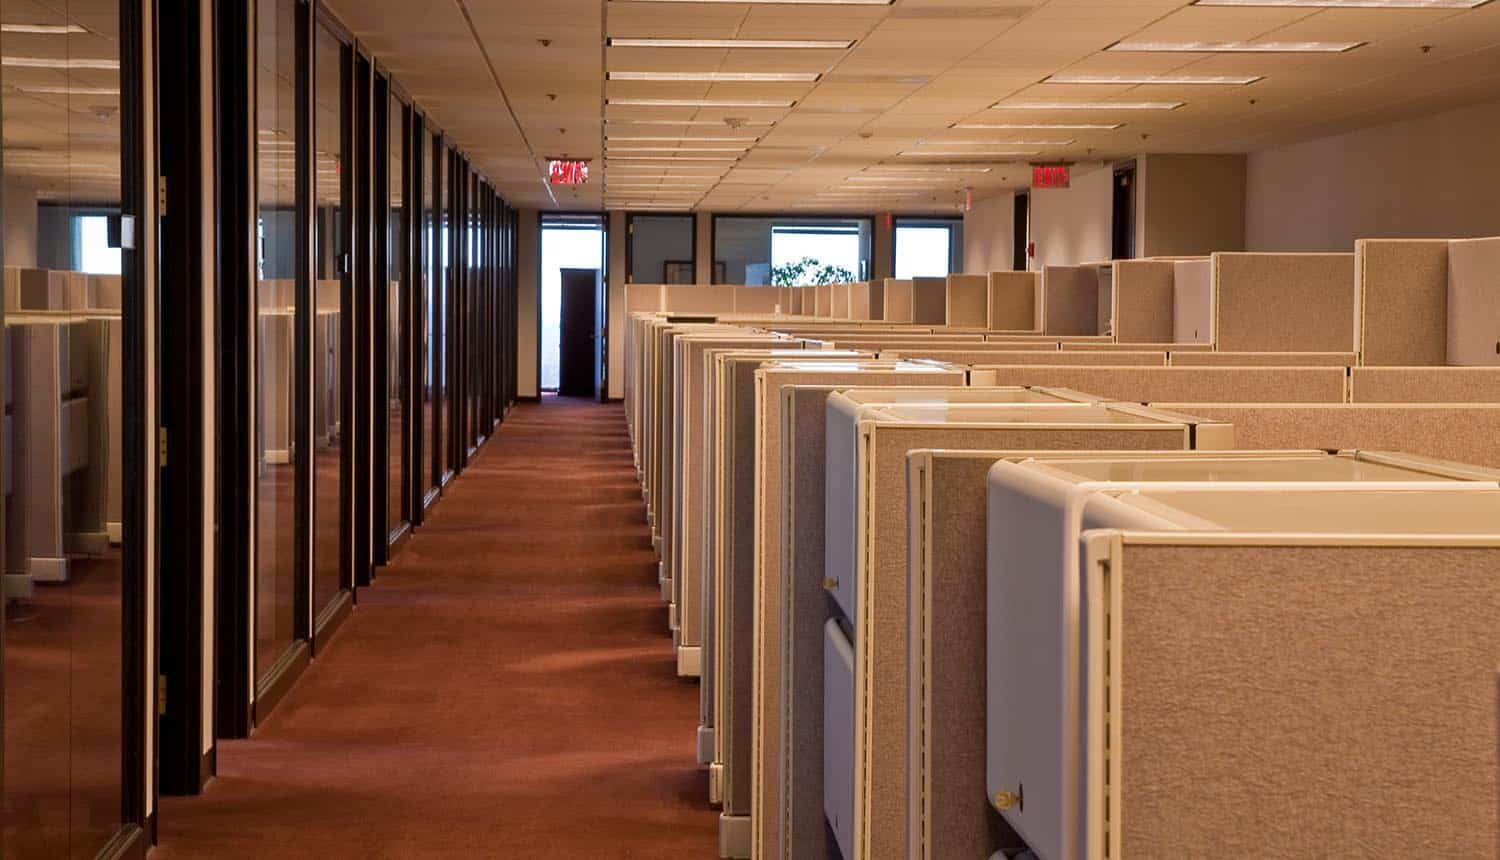 A row of beige cubicles in a modern office building showing growing cybersecurity workforce shortage